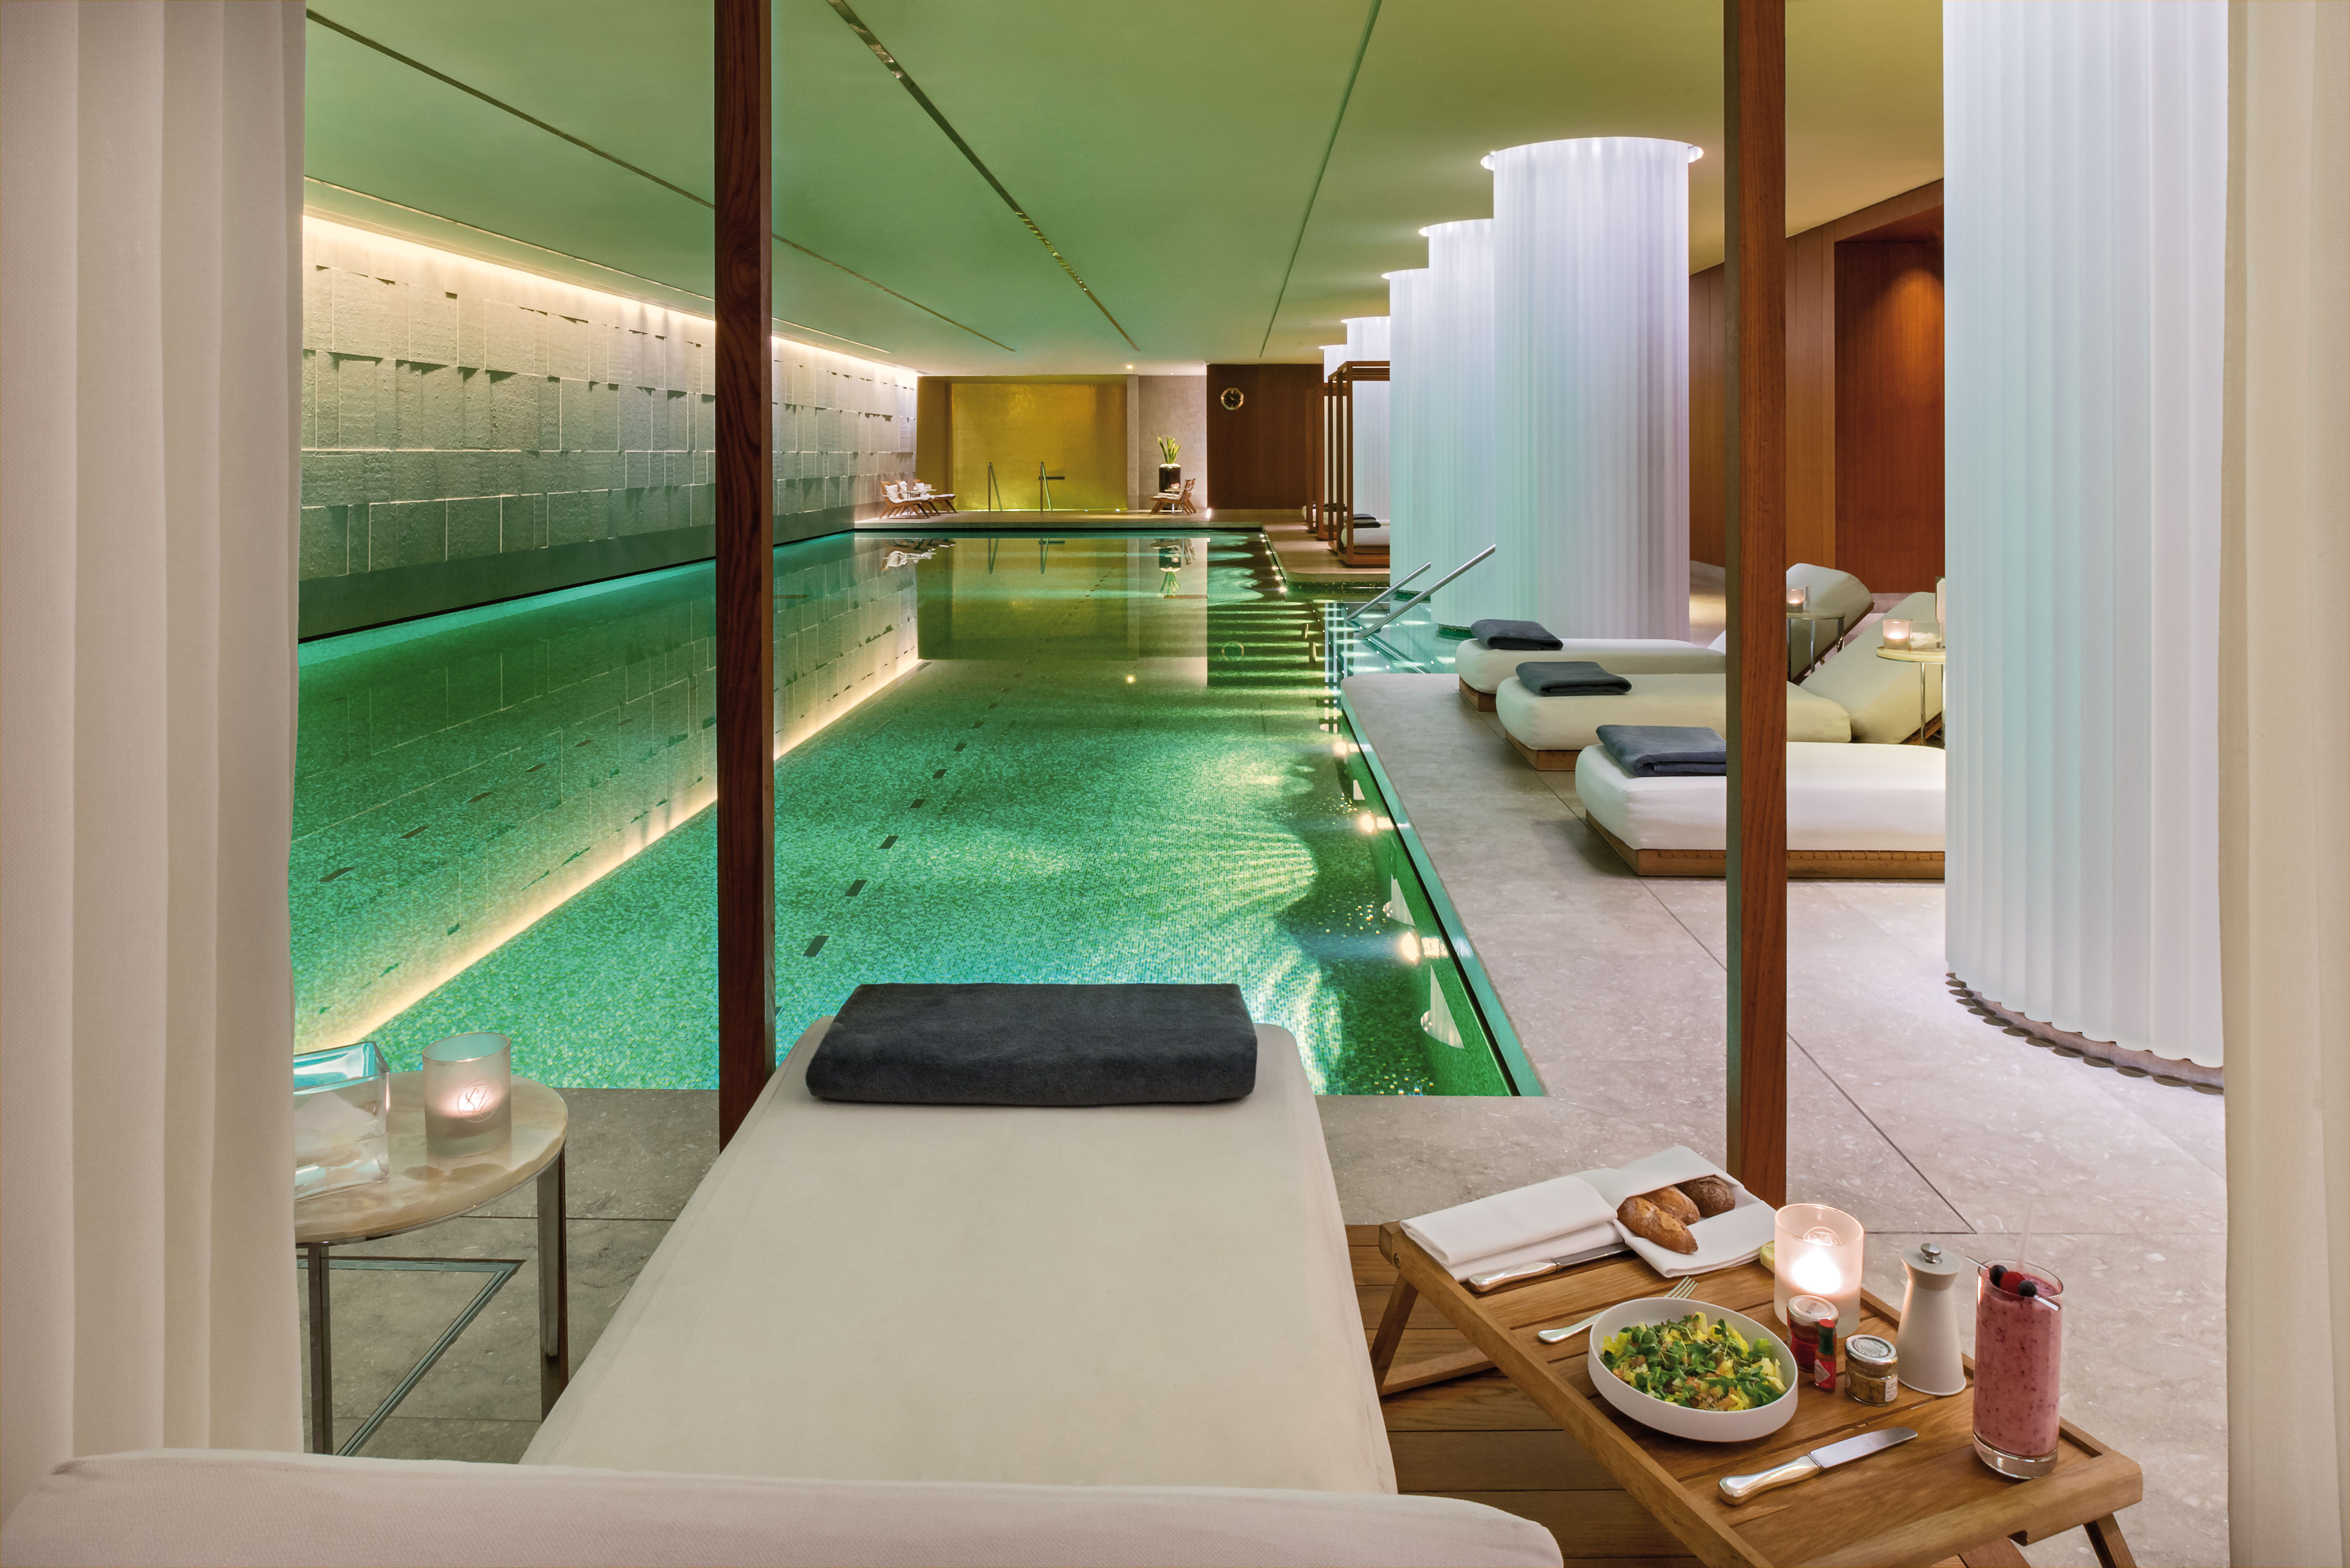 The Perfect Place To Rejuvenate Between Holiday Engagements The Spa Is A Subterranean Jewel Of Serenity In Bustling Spa London Bvlgari Hotel Bulgari Hotel Spa